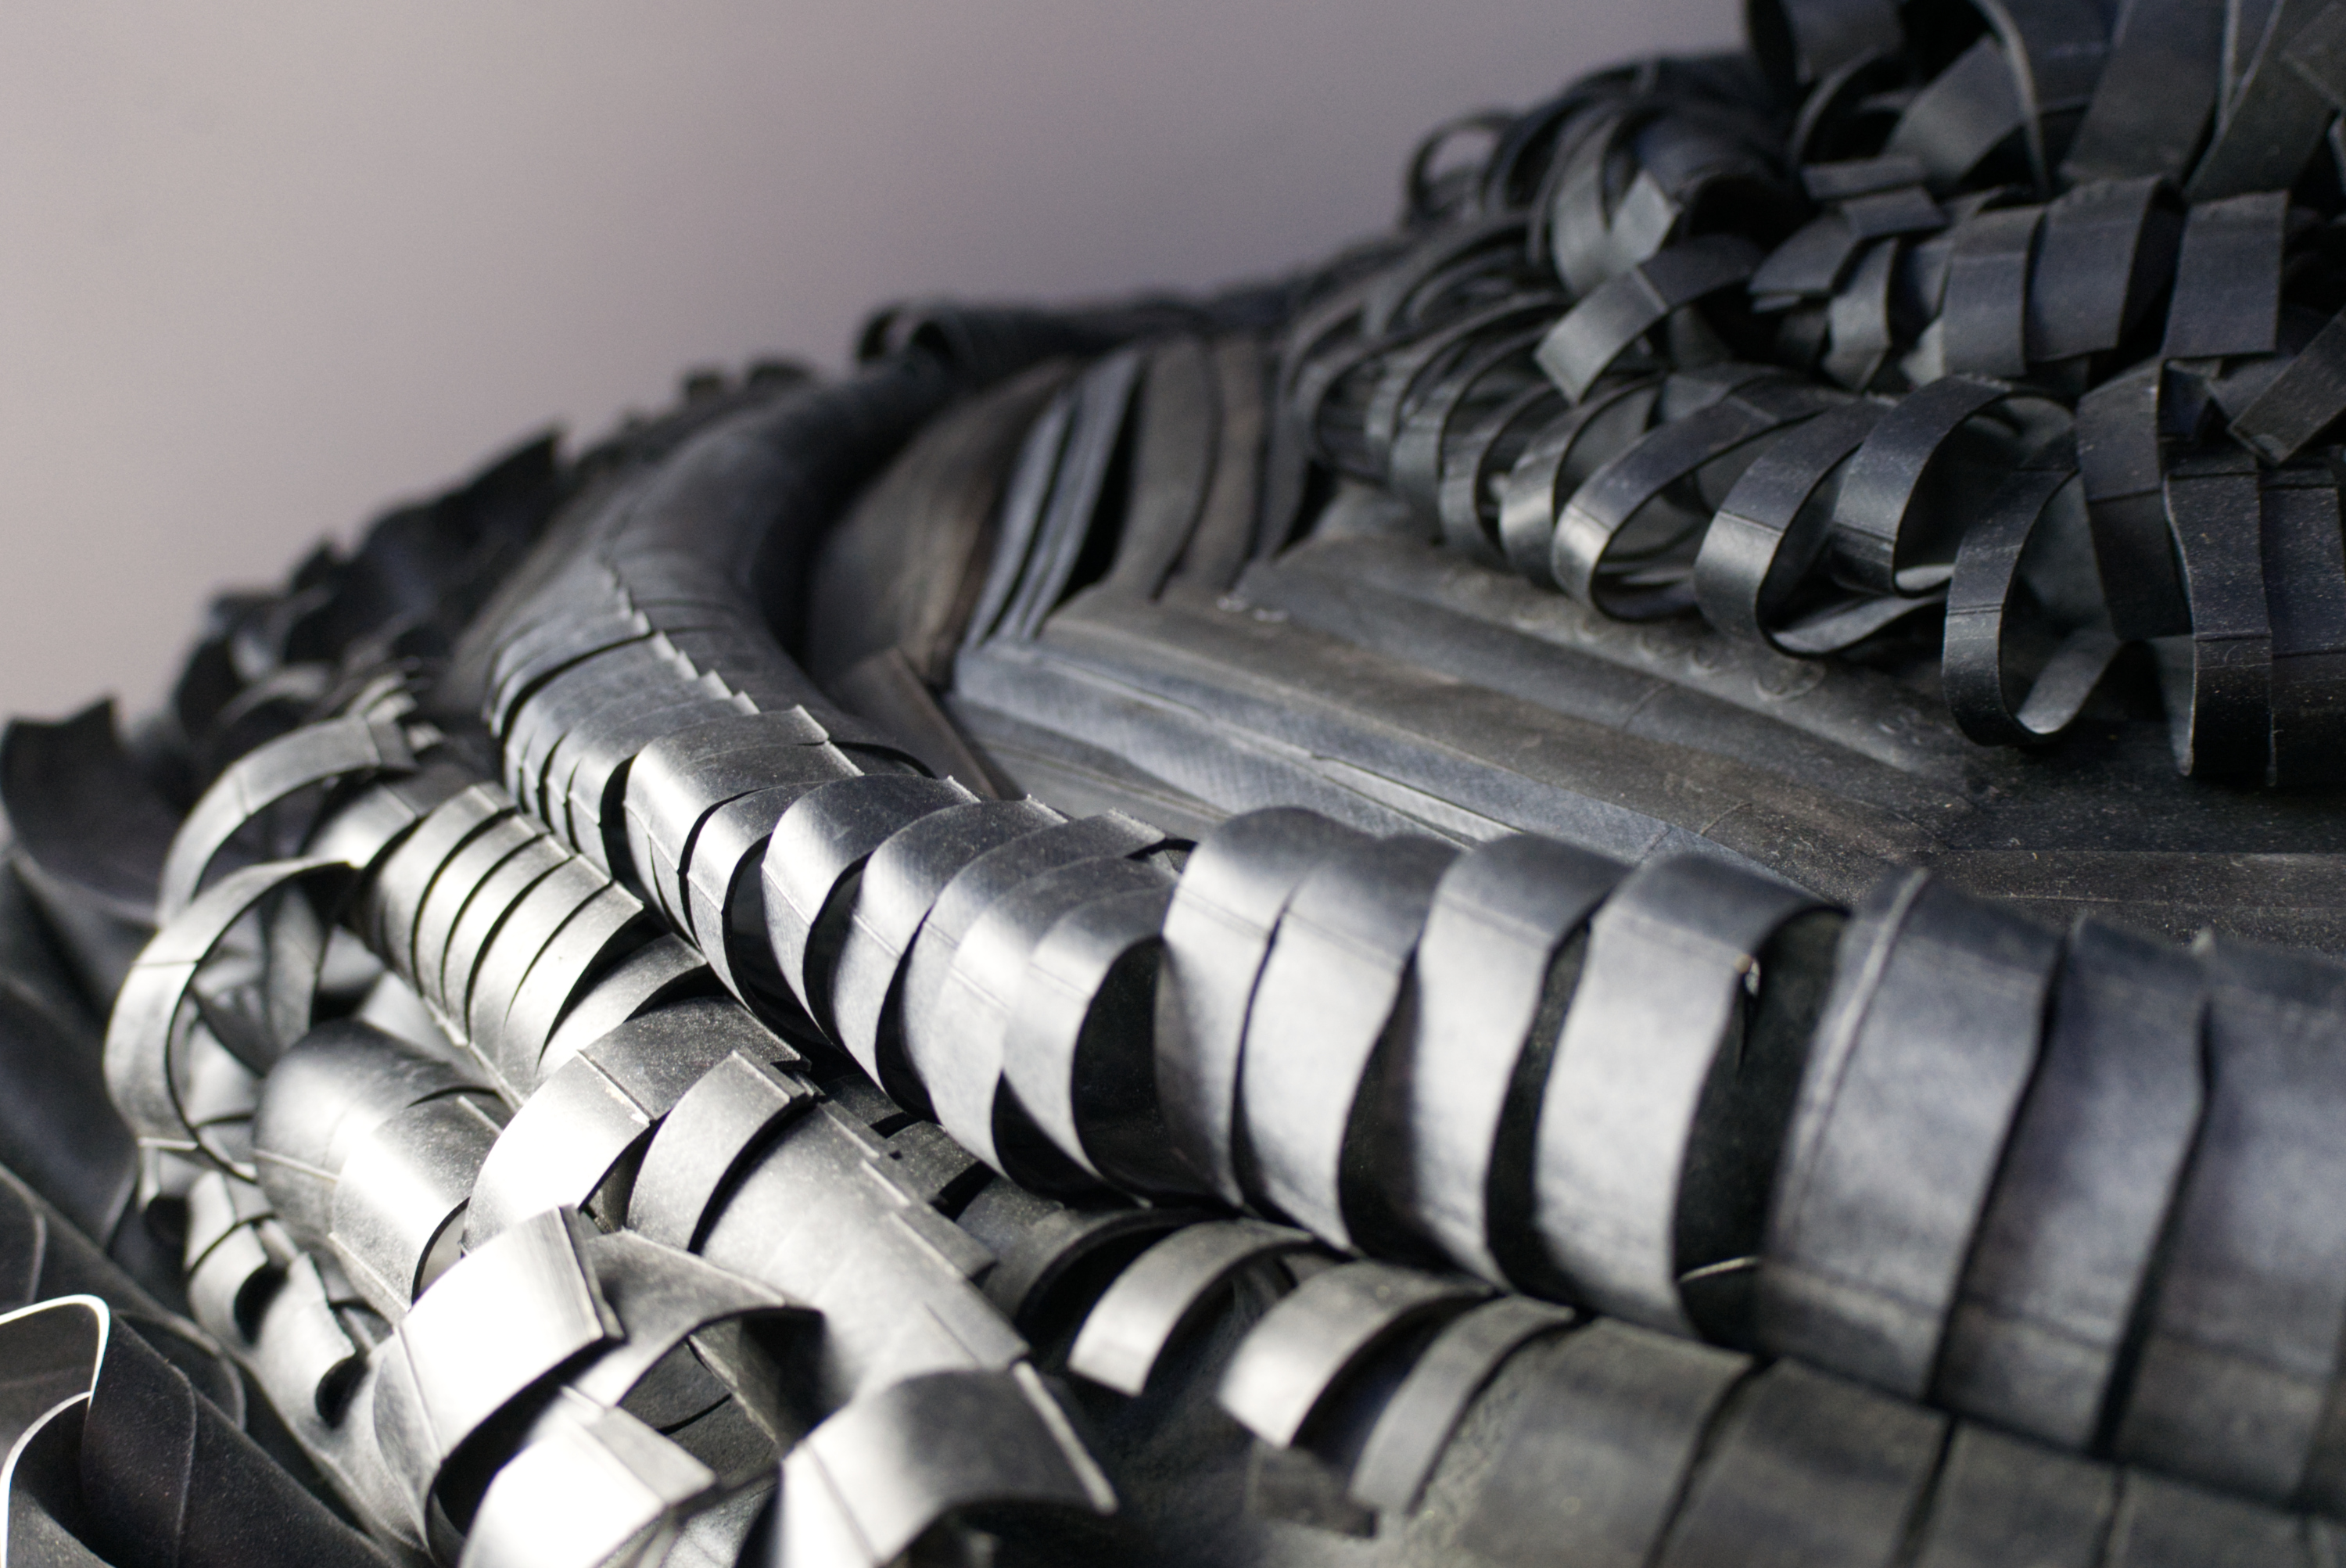 A detail of a suspended rubber woven sculpture. The rubber creates a varied layered textures over the curve of the sculpture.